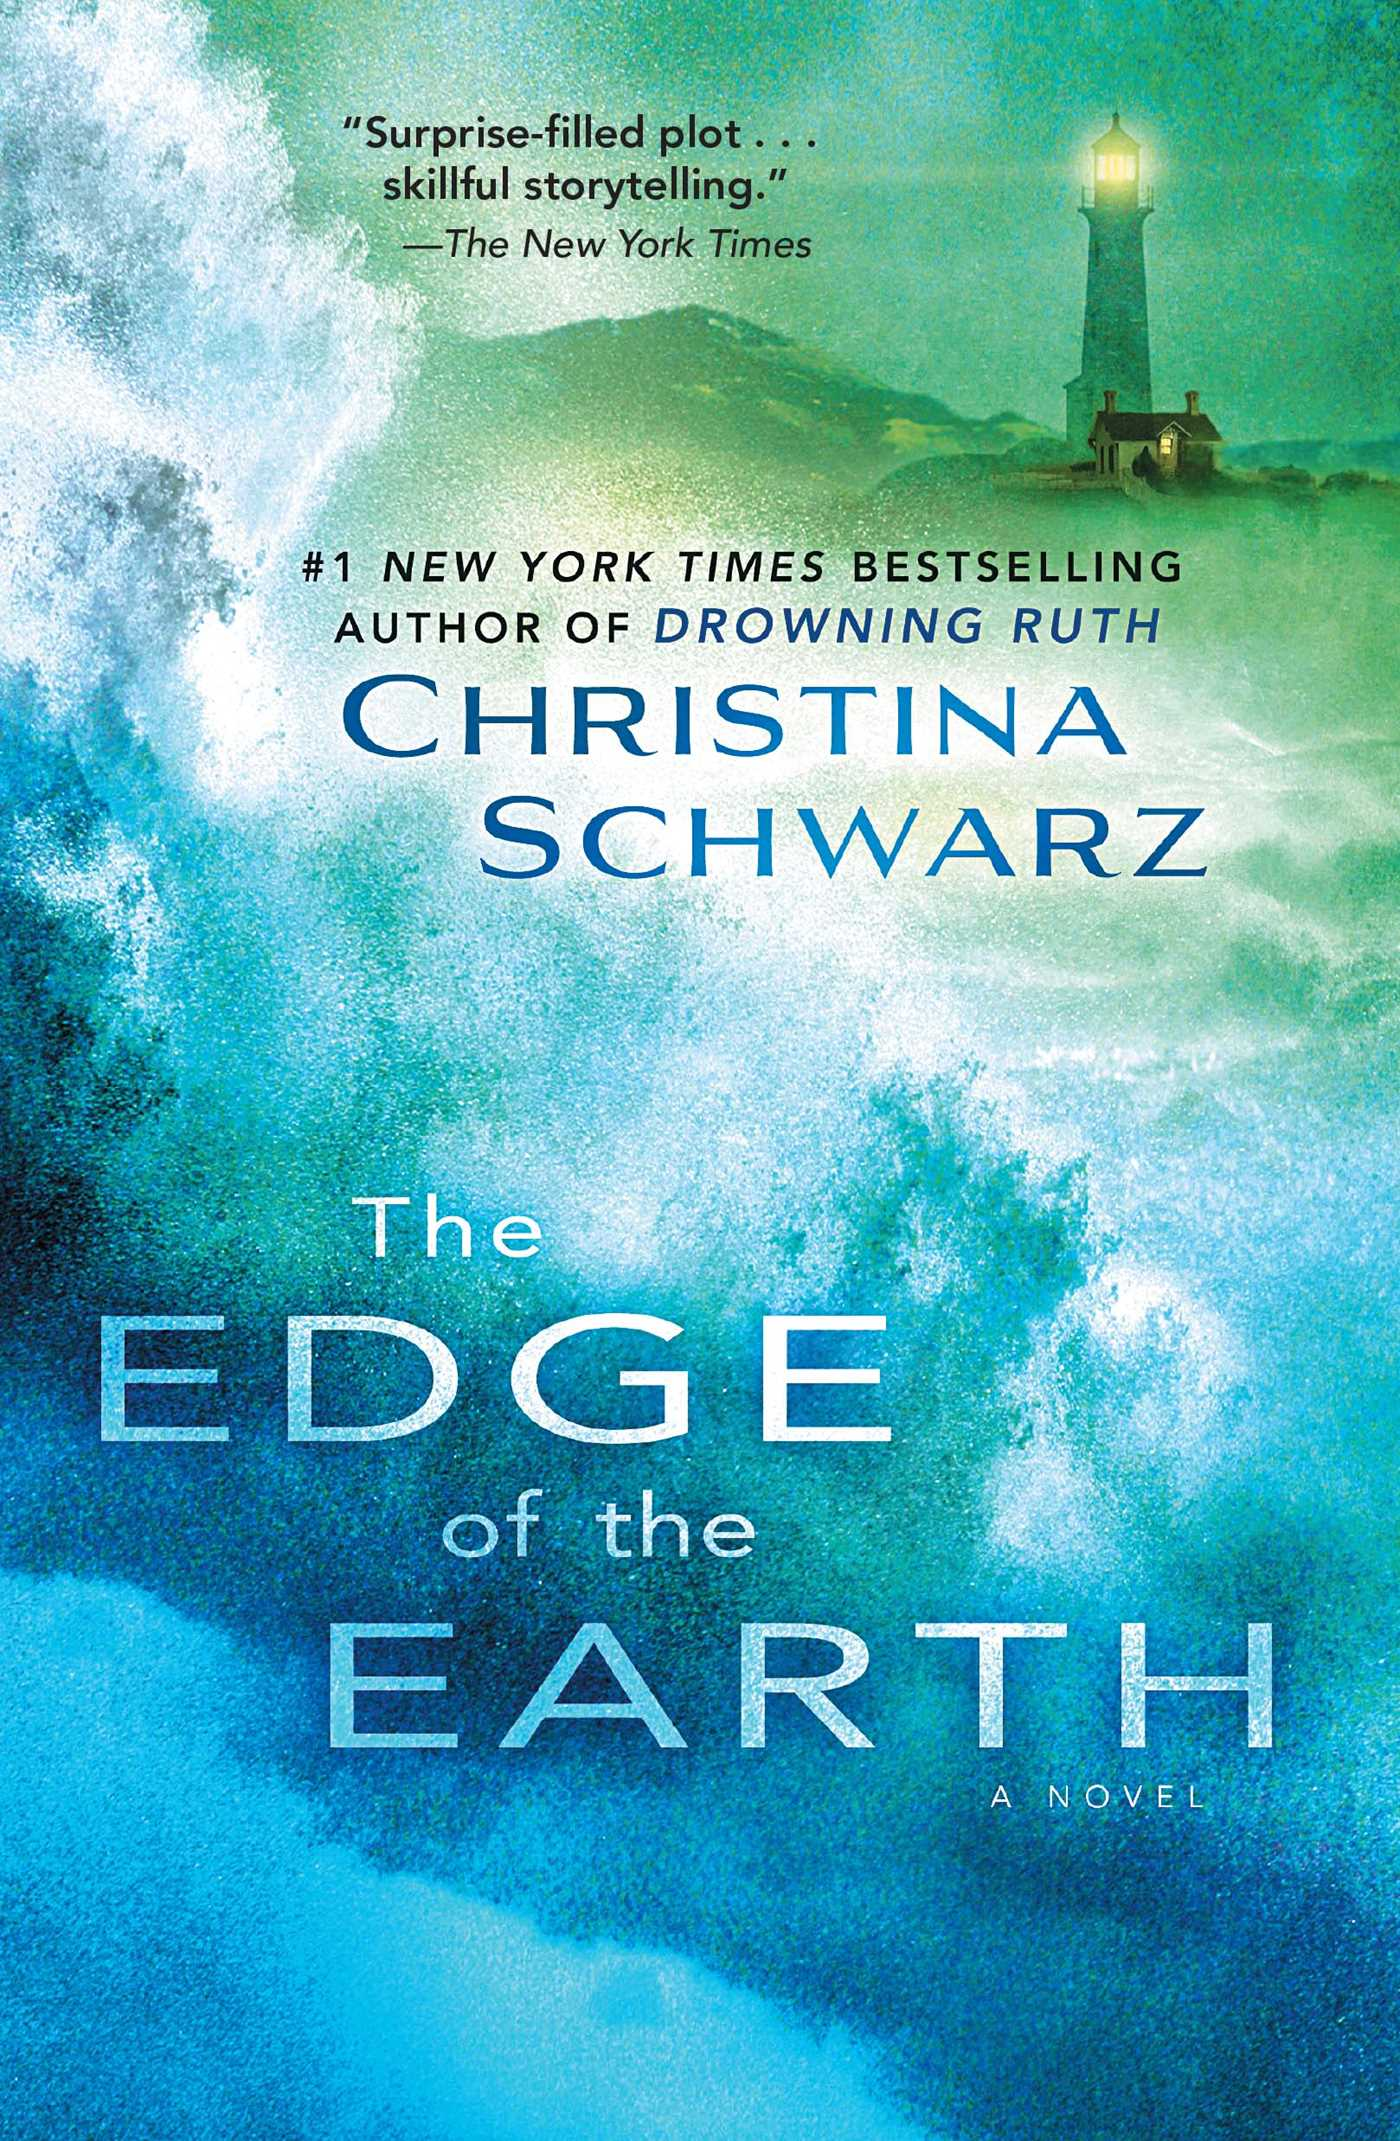 The edge of the earth 9781451683707 hr